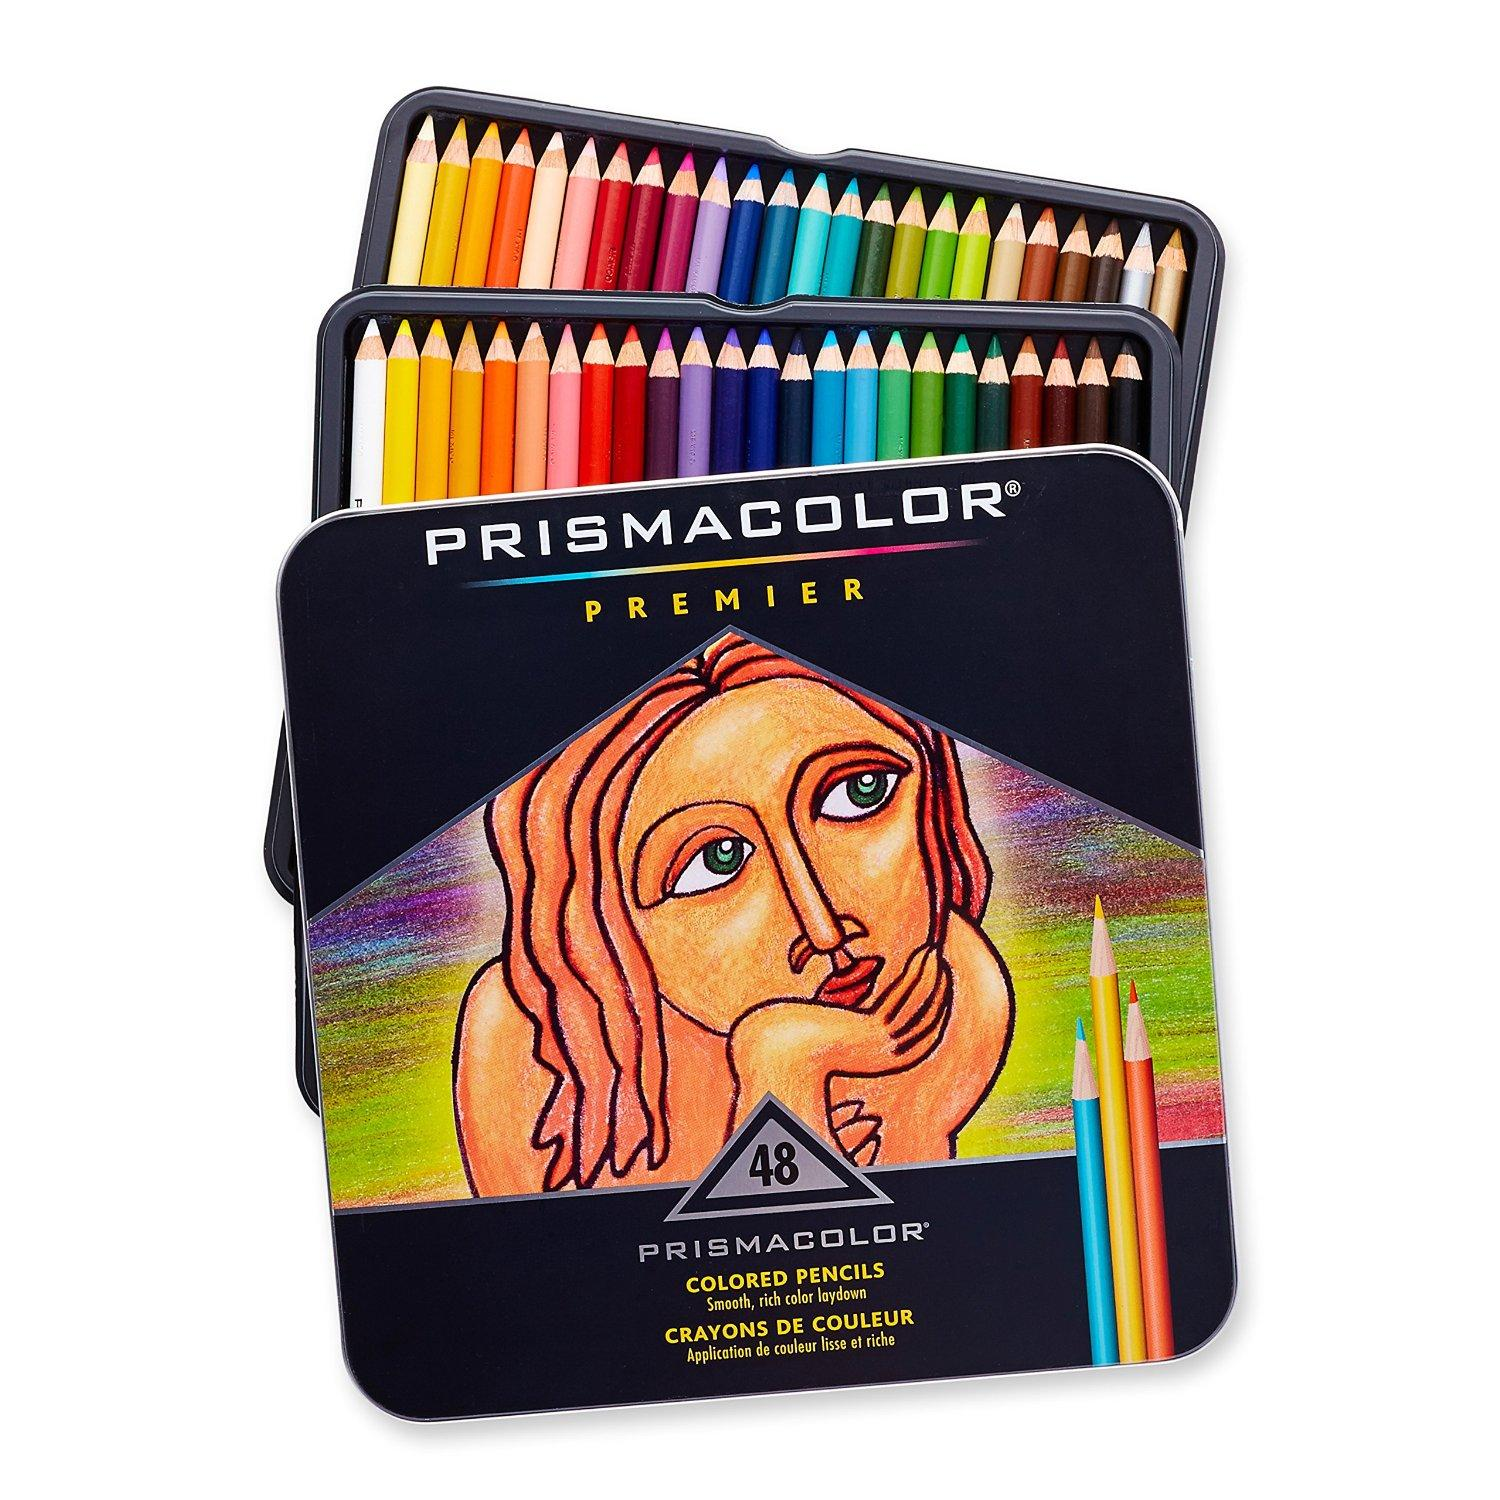 Prismacolor Premier Soft Core Colored Pencil, Set of 48 Colors